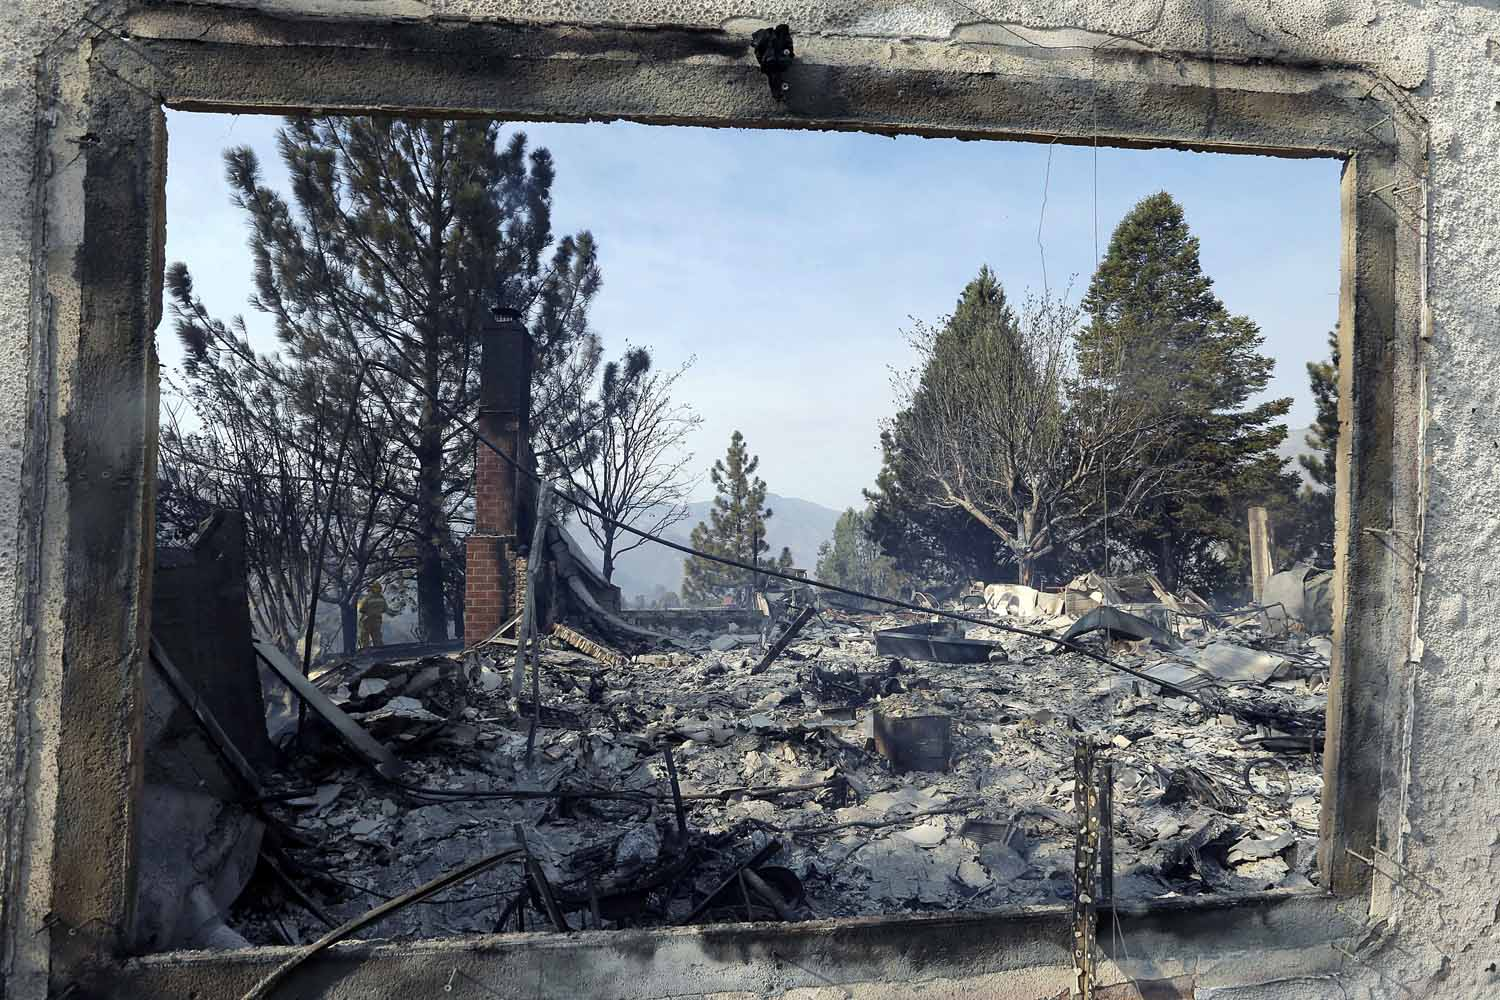 June 2, 2013. A window frames the view of a home damaged by wildfires in Lake Hughes, CA.